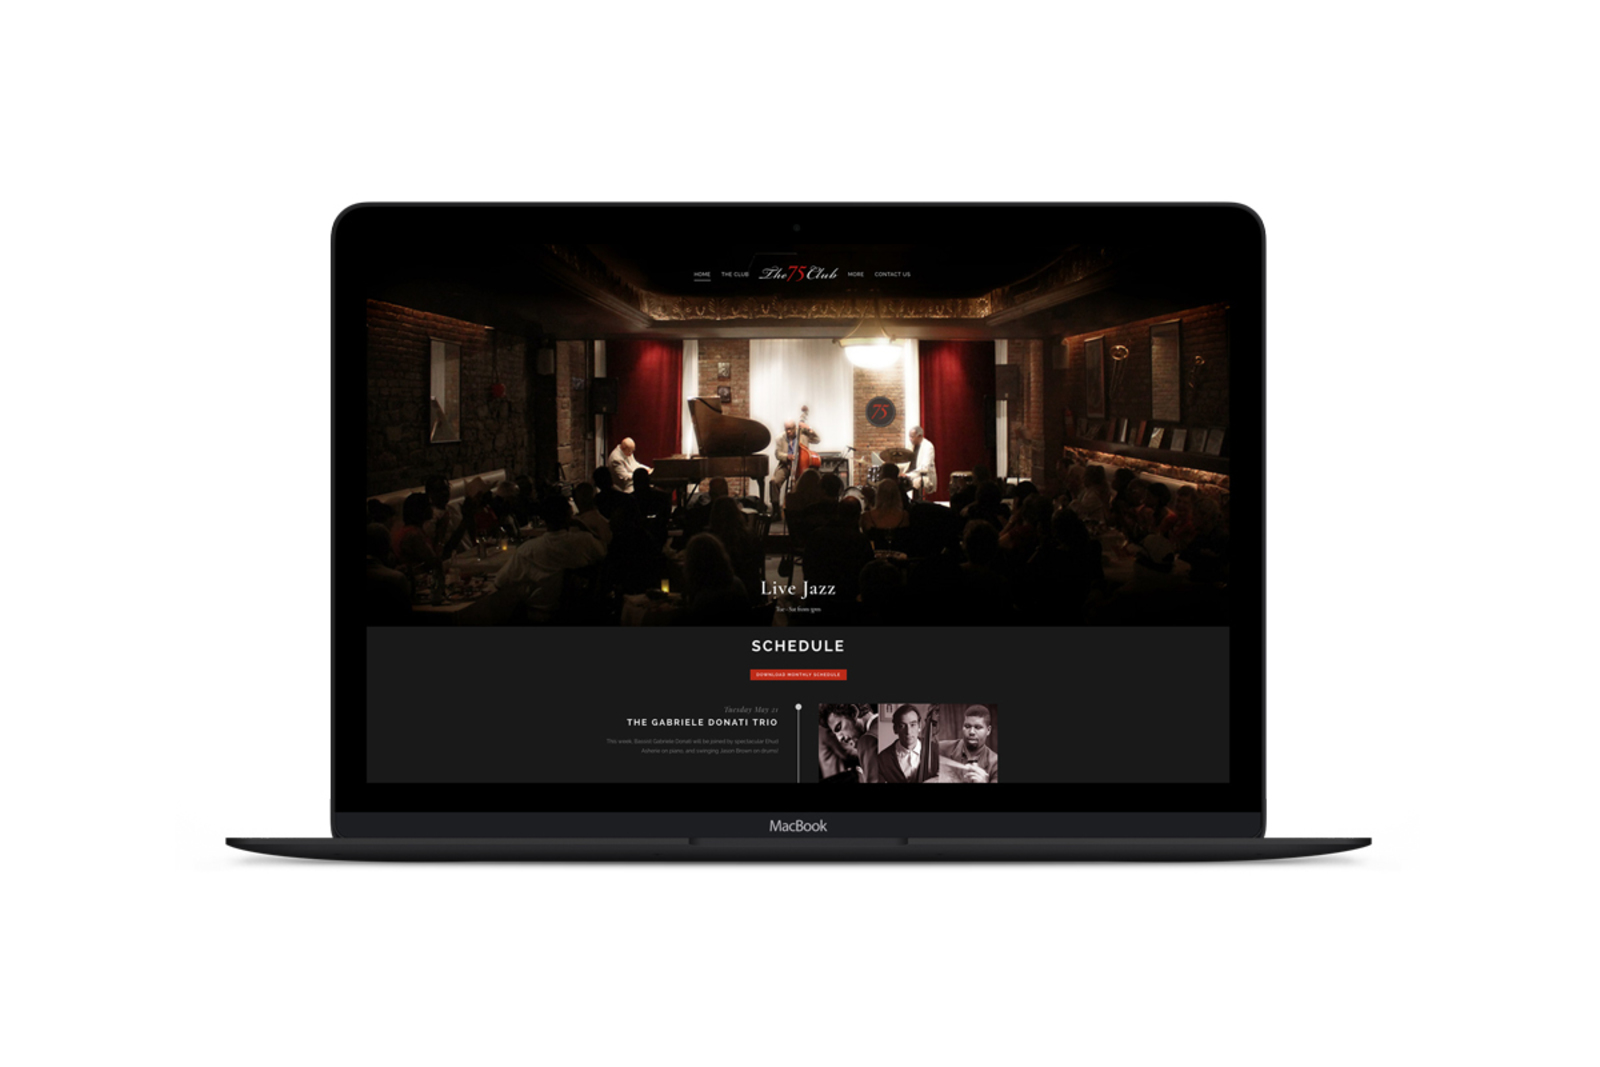 Macbook mockup showing the website of The 75 Club